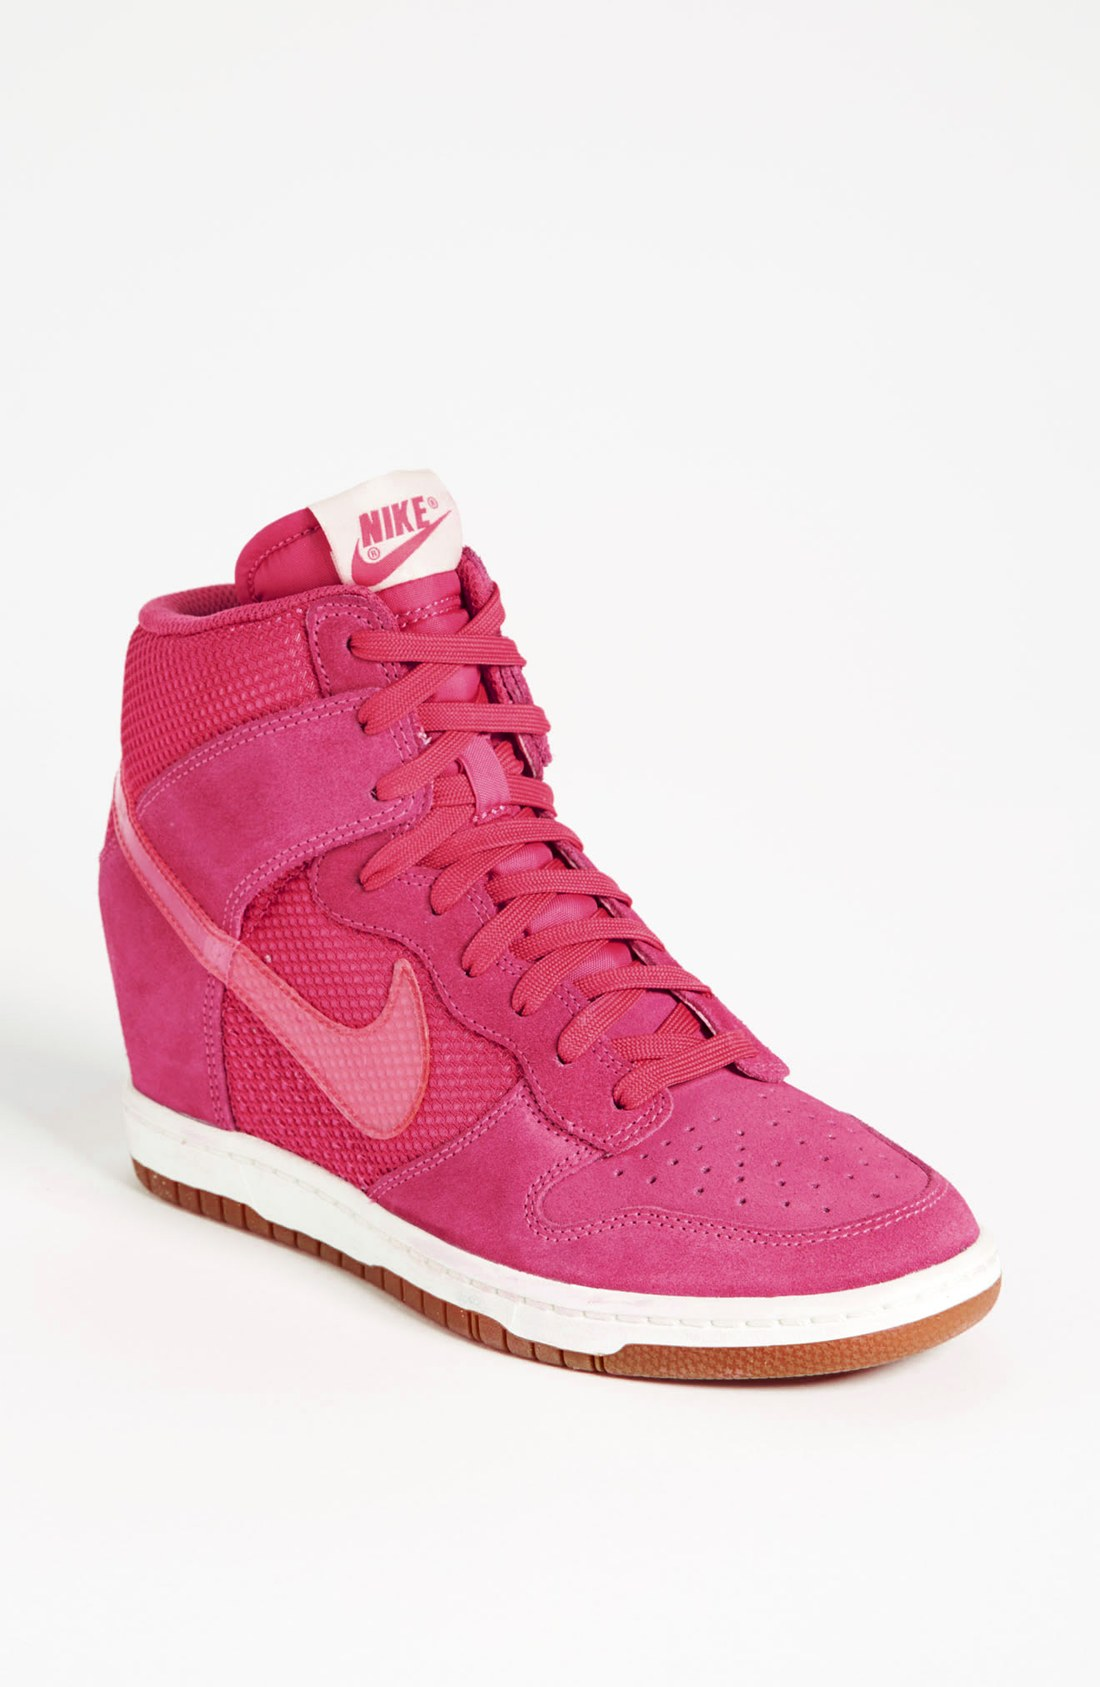 nike dunk sky hi wedge sneaker in pink lyst. Black Bedroom Furniture Sets. Home Design Ideas